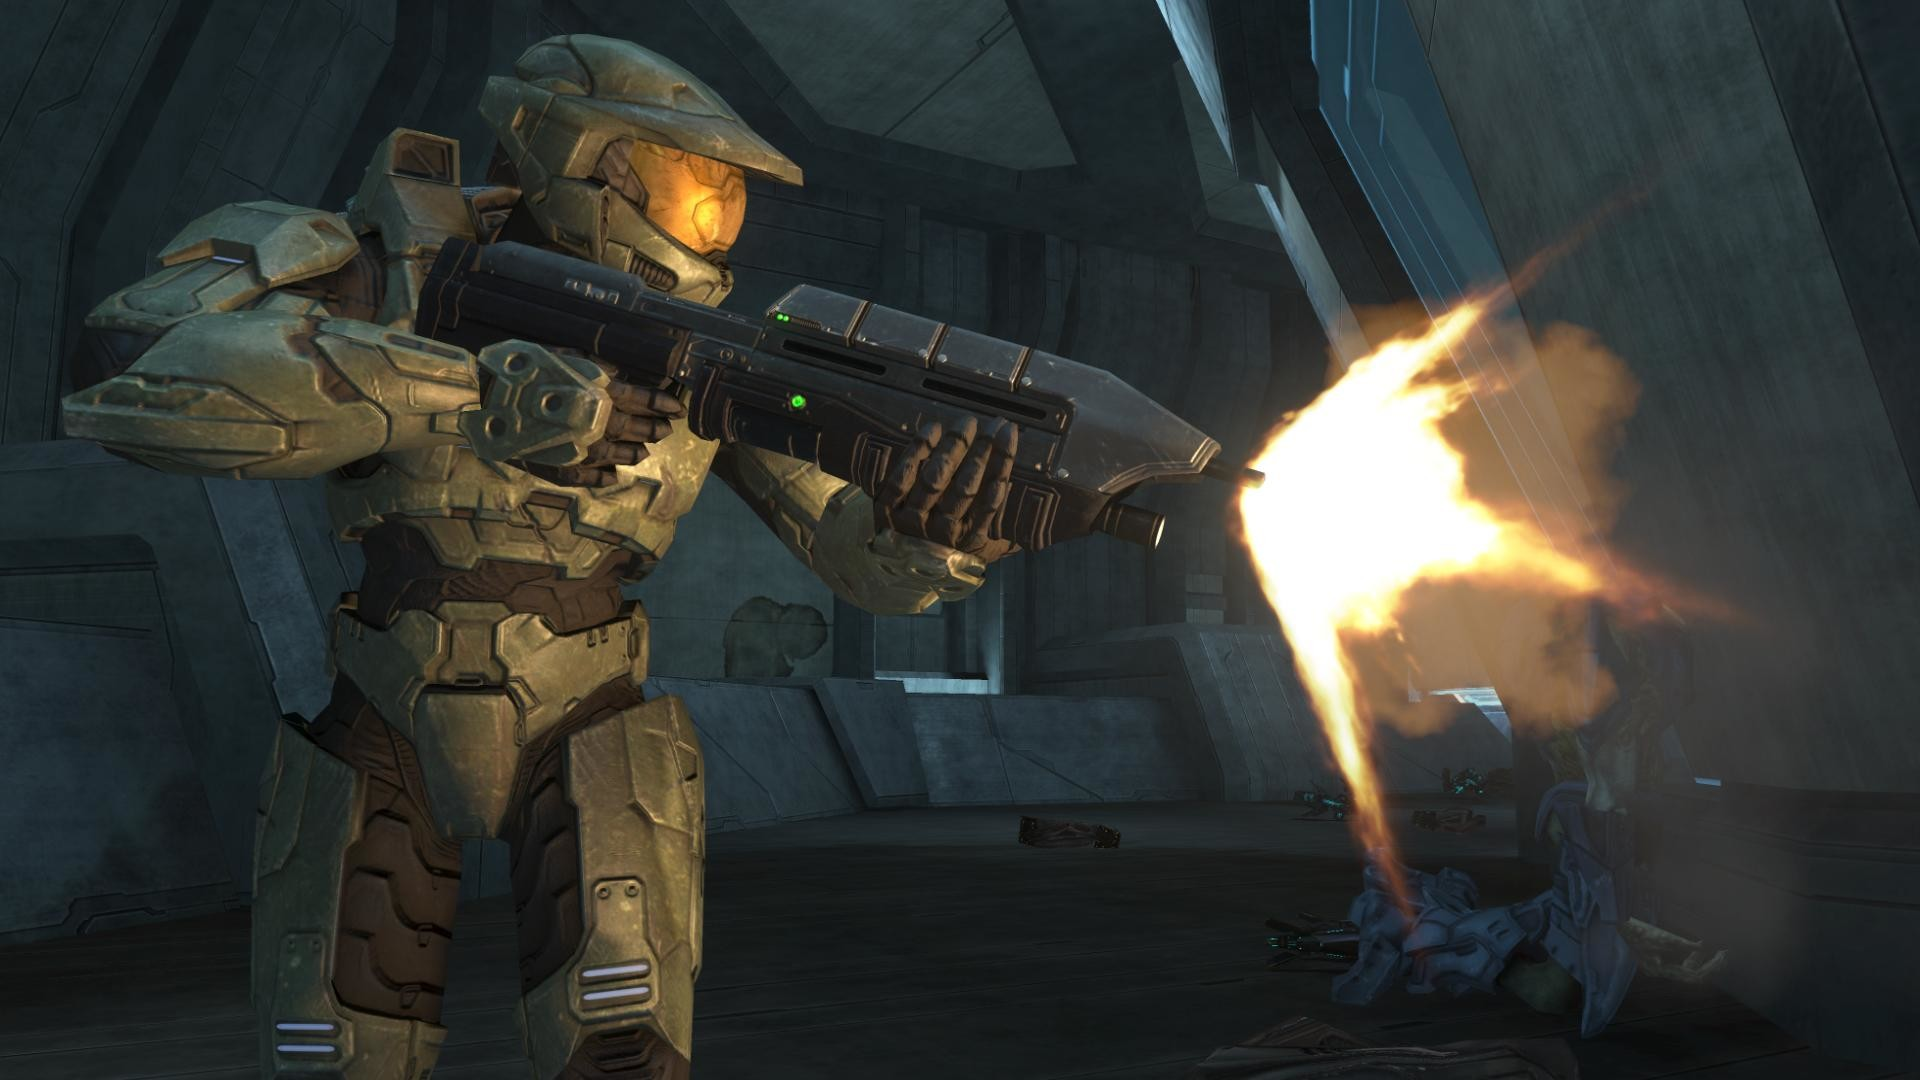 Halo 3 arbiter wallpaper 86 images - Master chief in halo reach ...